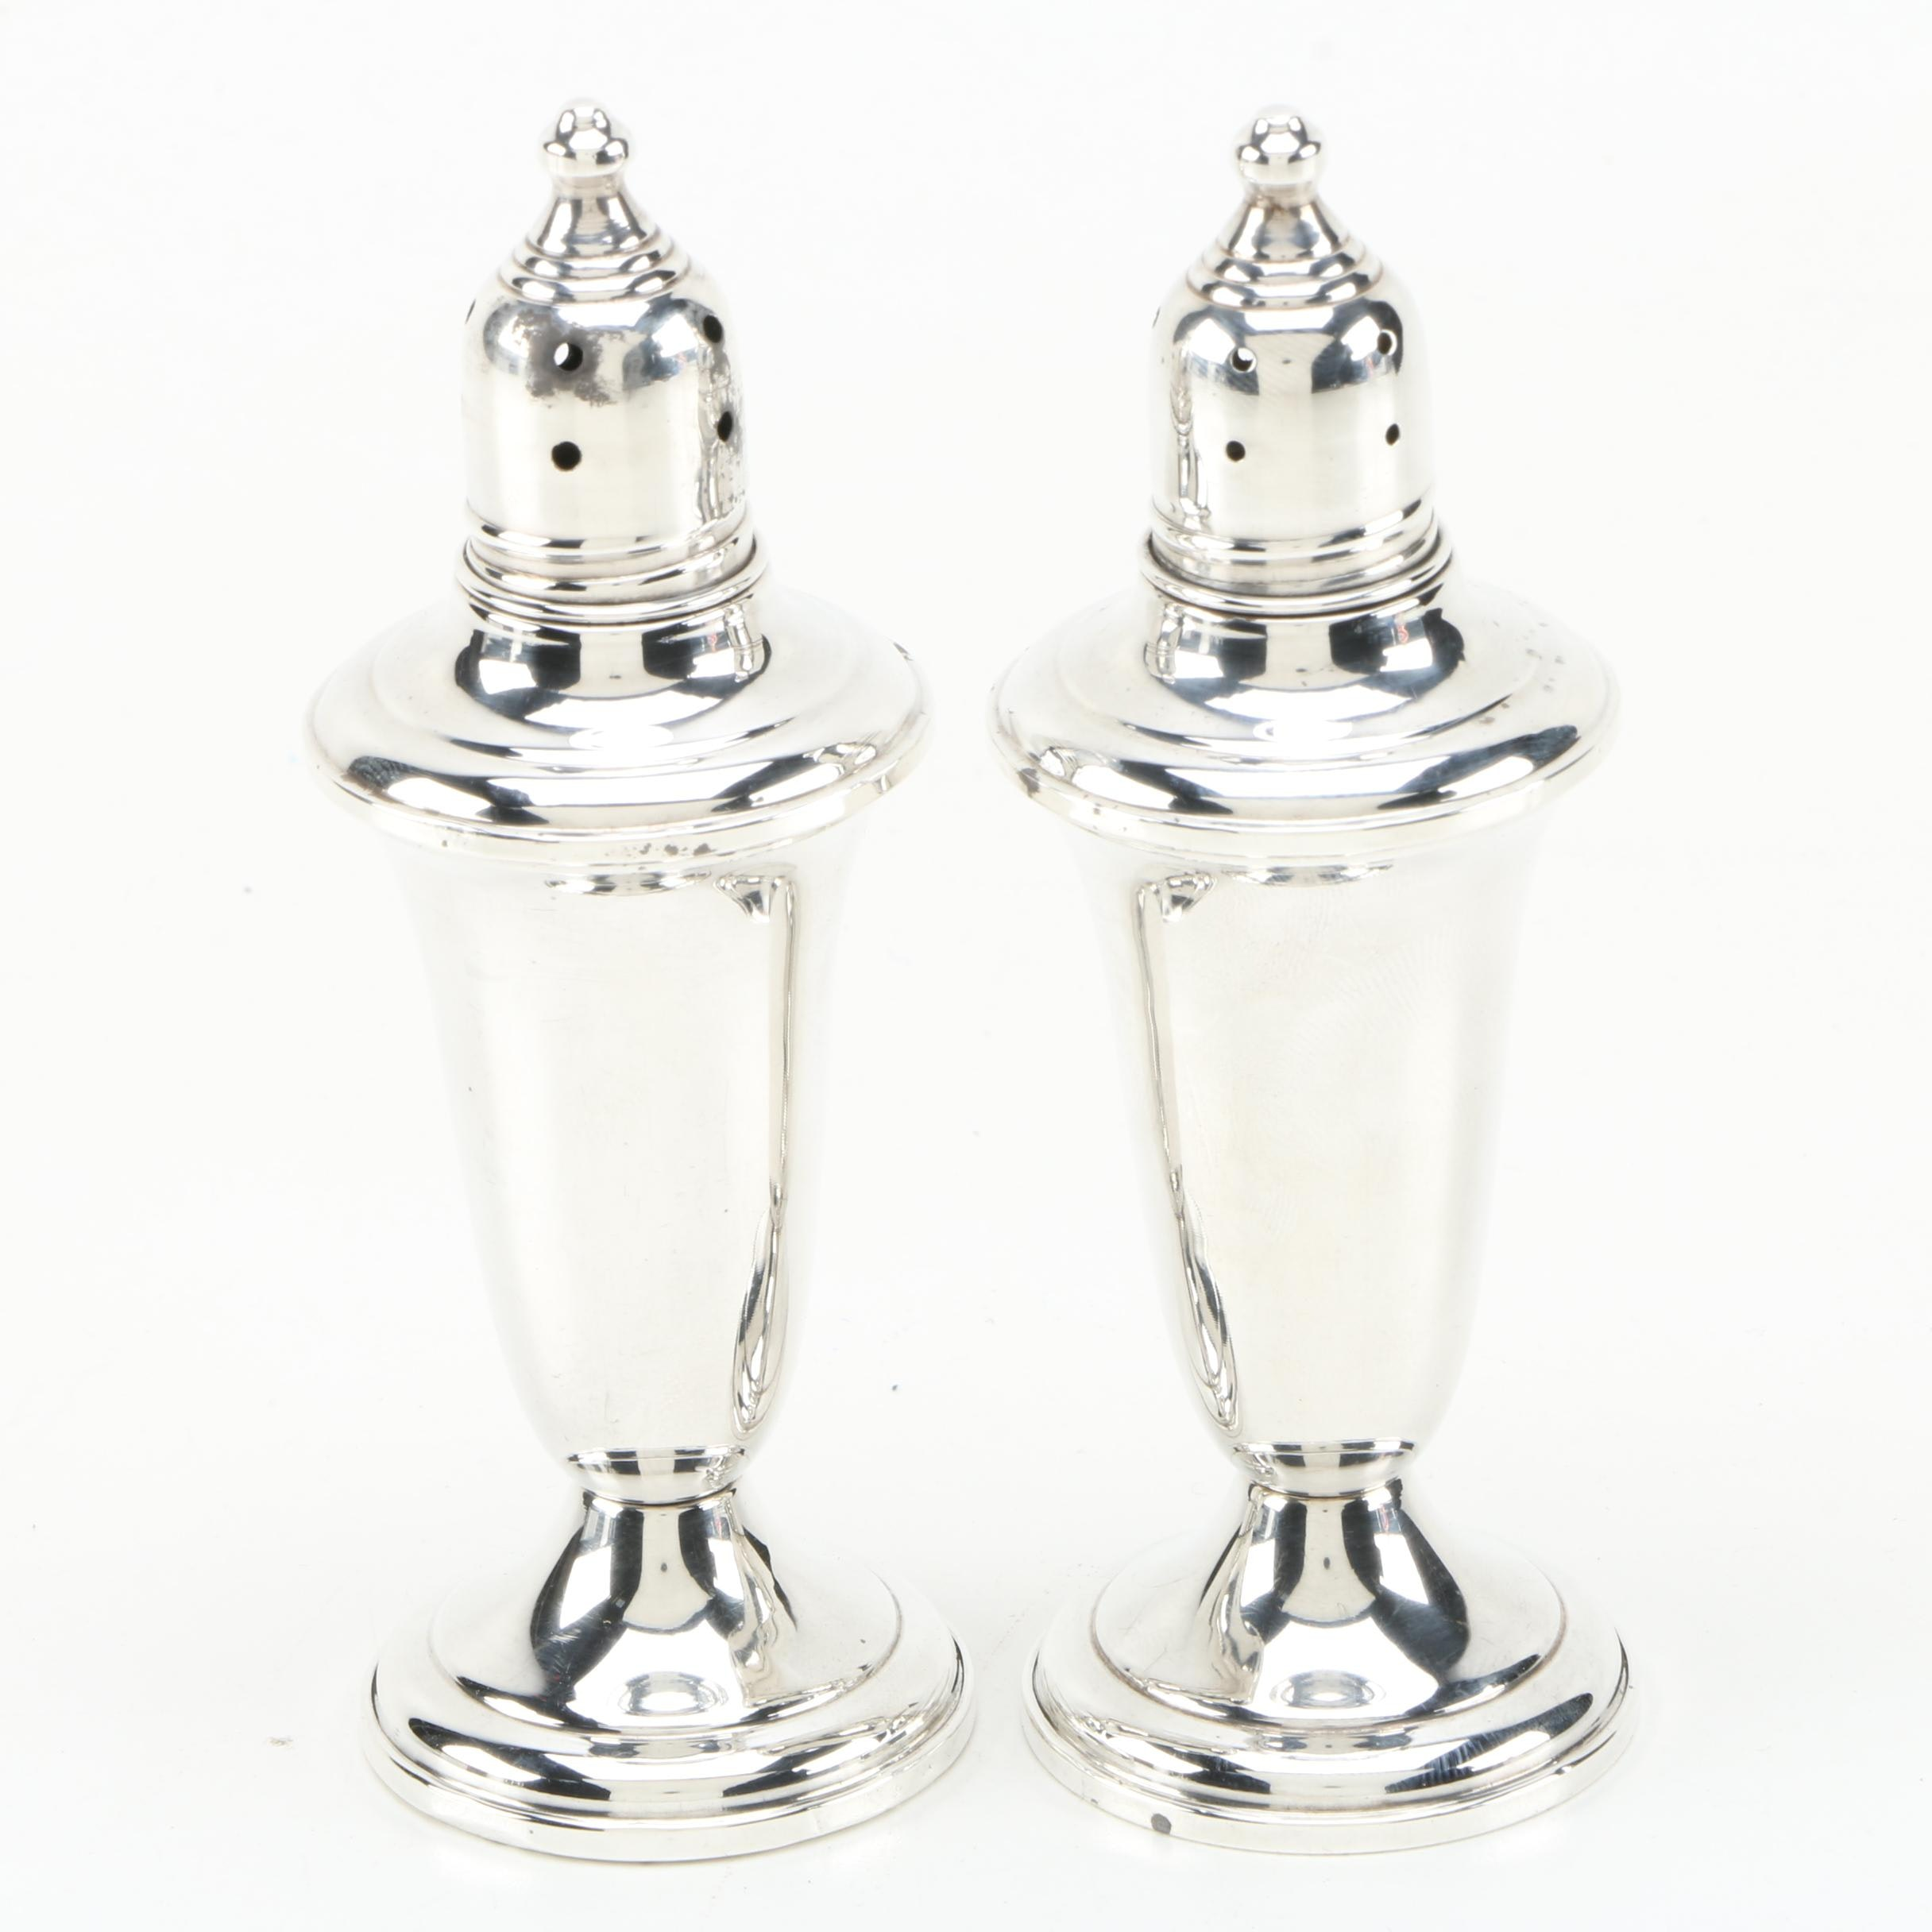 Empire Silver Co. Weighted Sterling Salt and Pepper Shakers